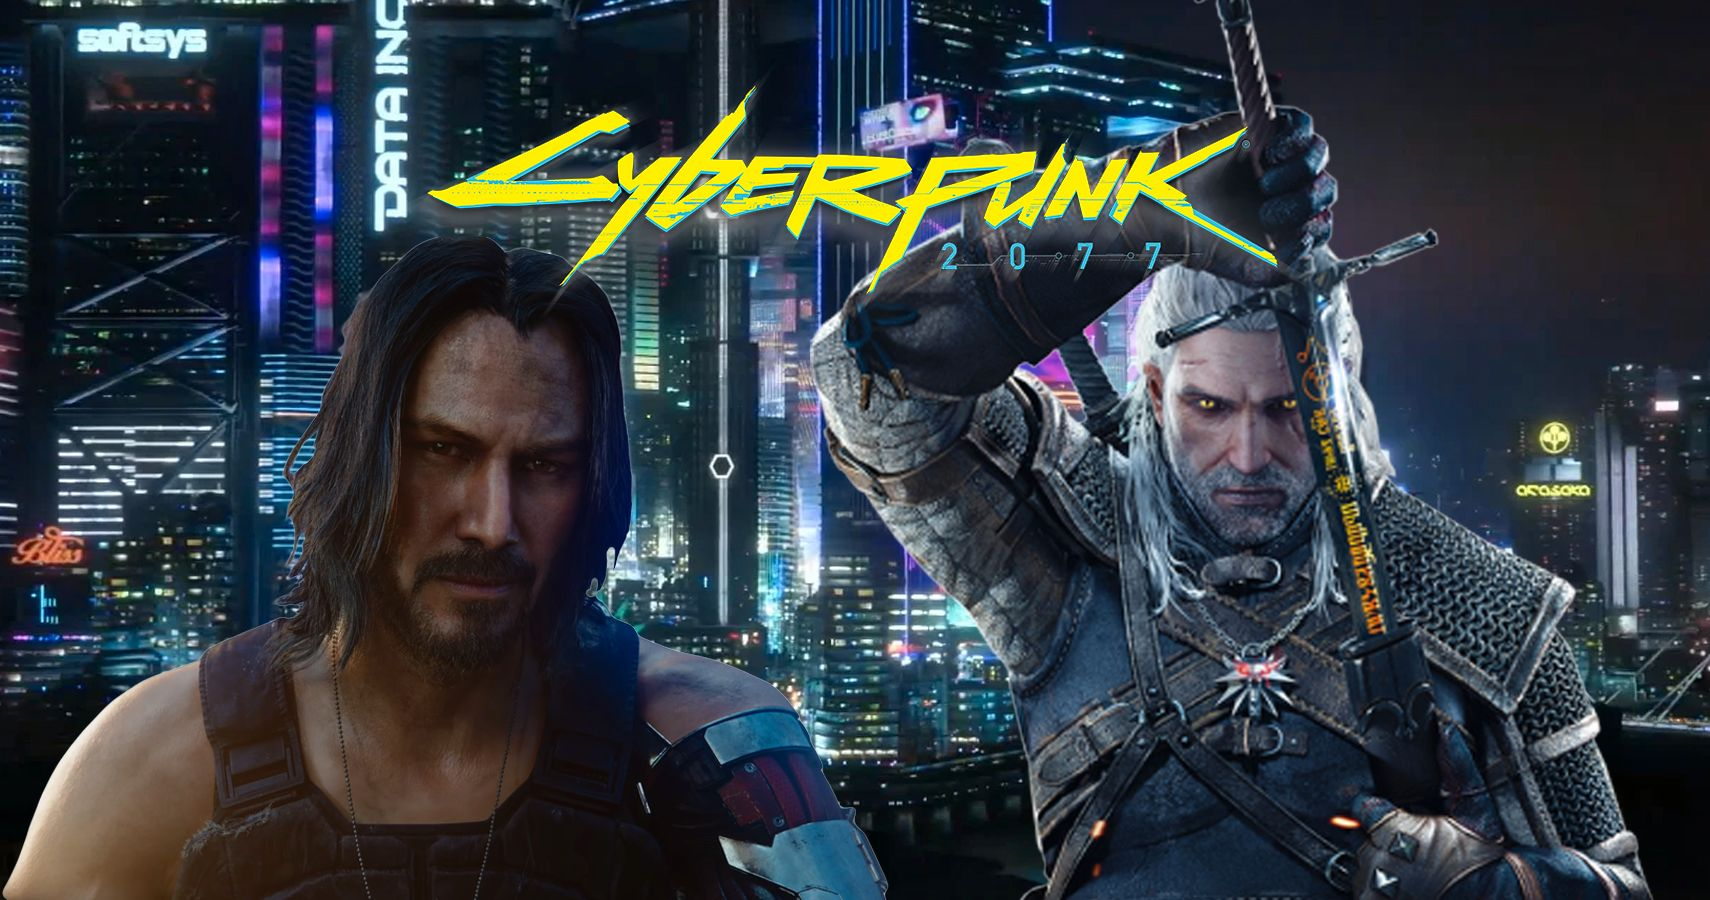 Cyberpunk 2077 Release Date is Fixed or it could be Delayed